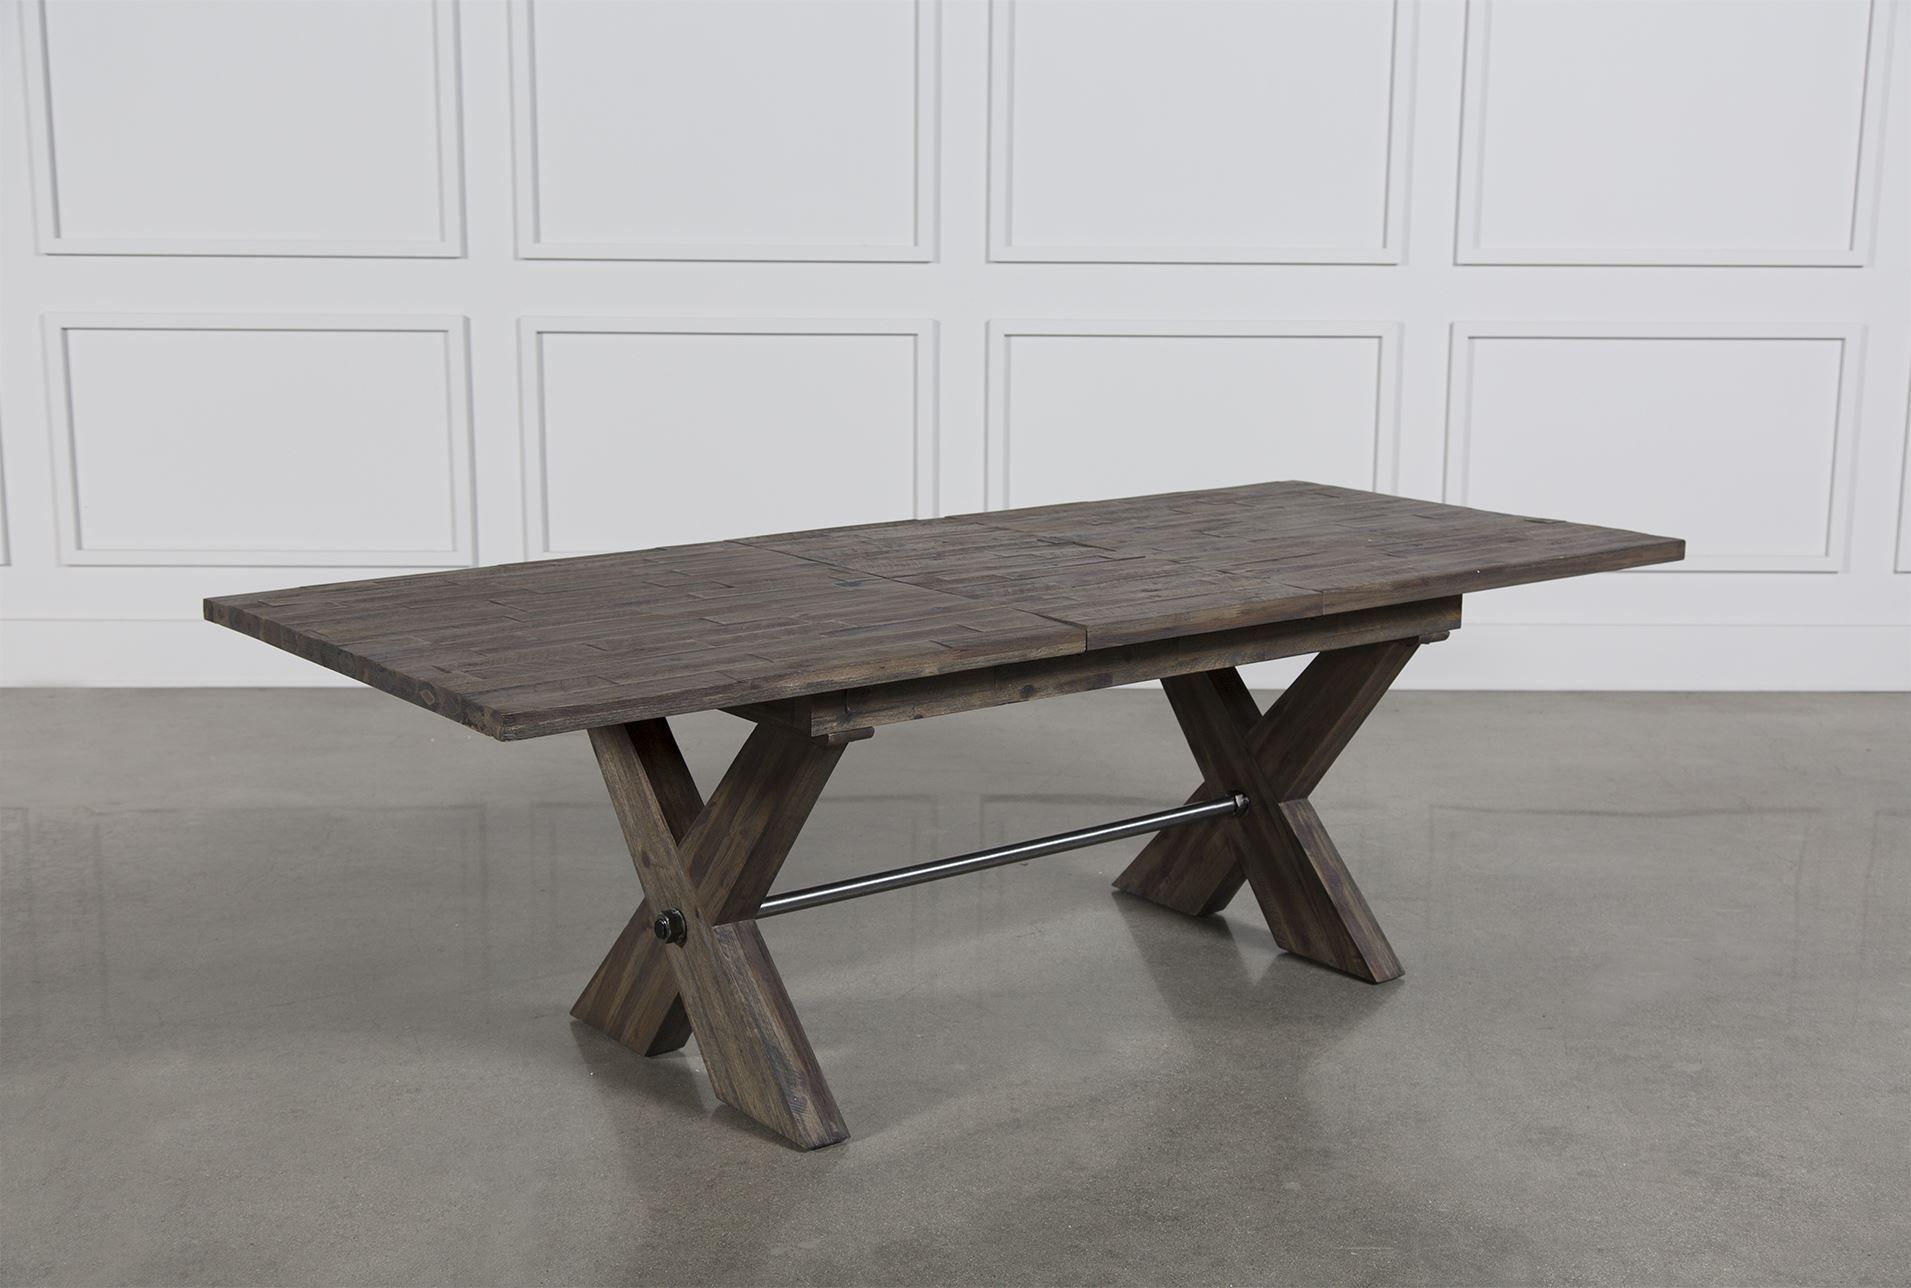 Mallard Extension Dining Table | Home Sweet Home | Pinterest In Most Current Mallard Extension Dining Tables (Photo 5 of 20)